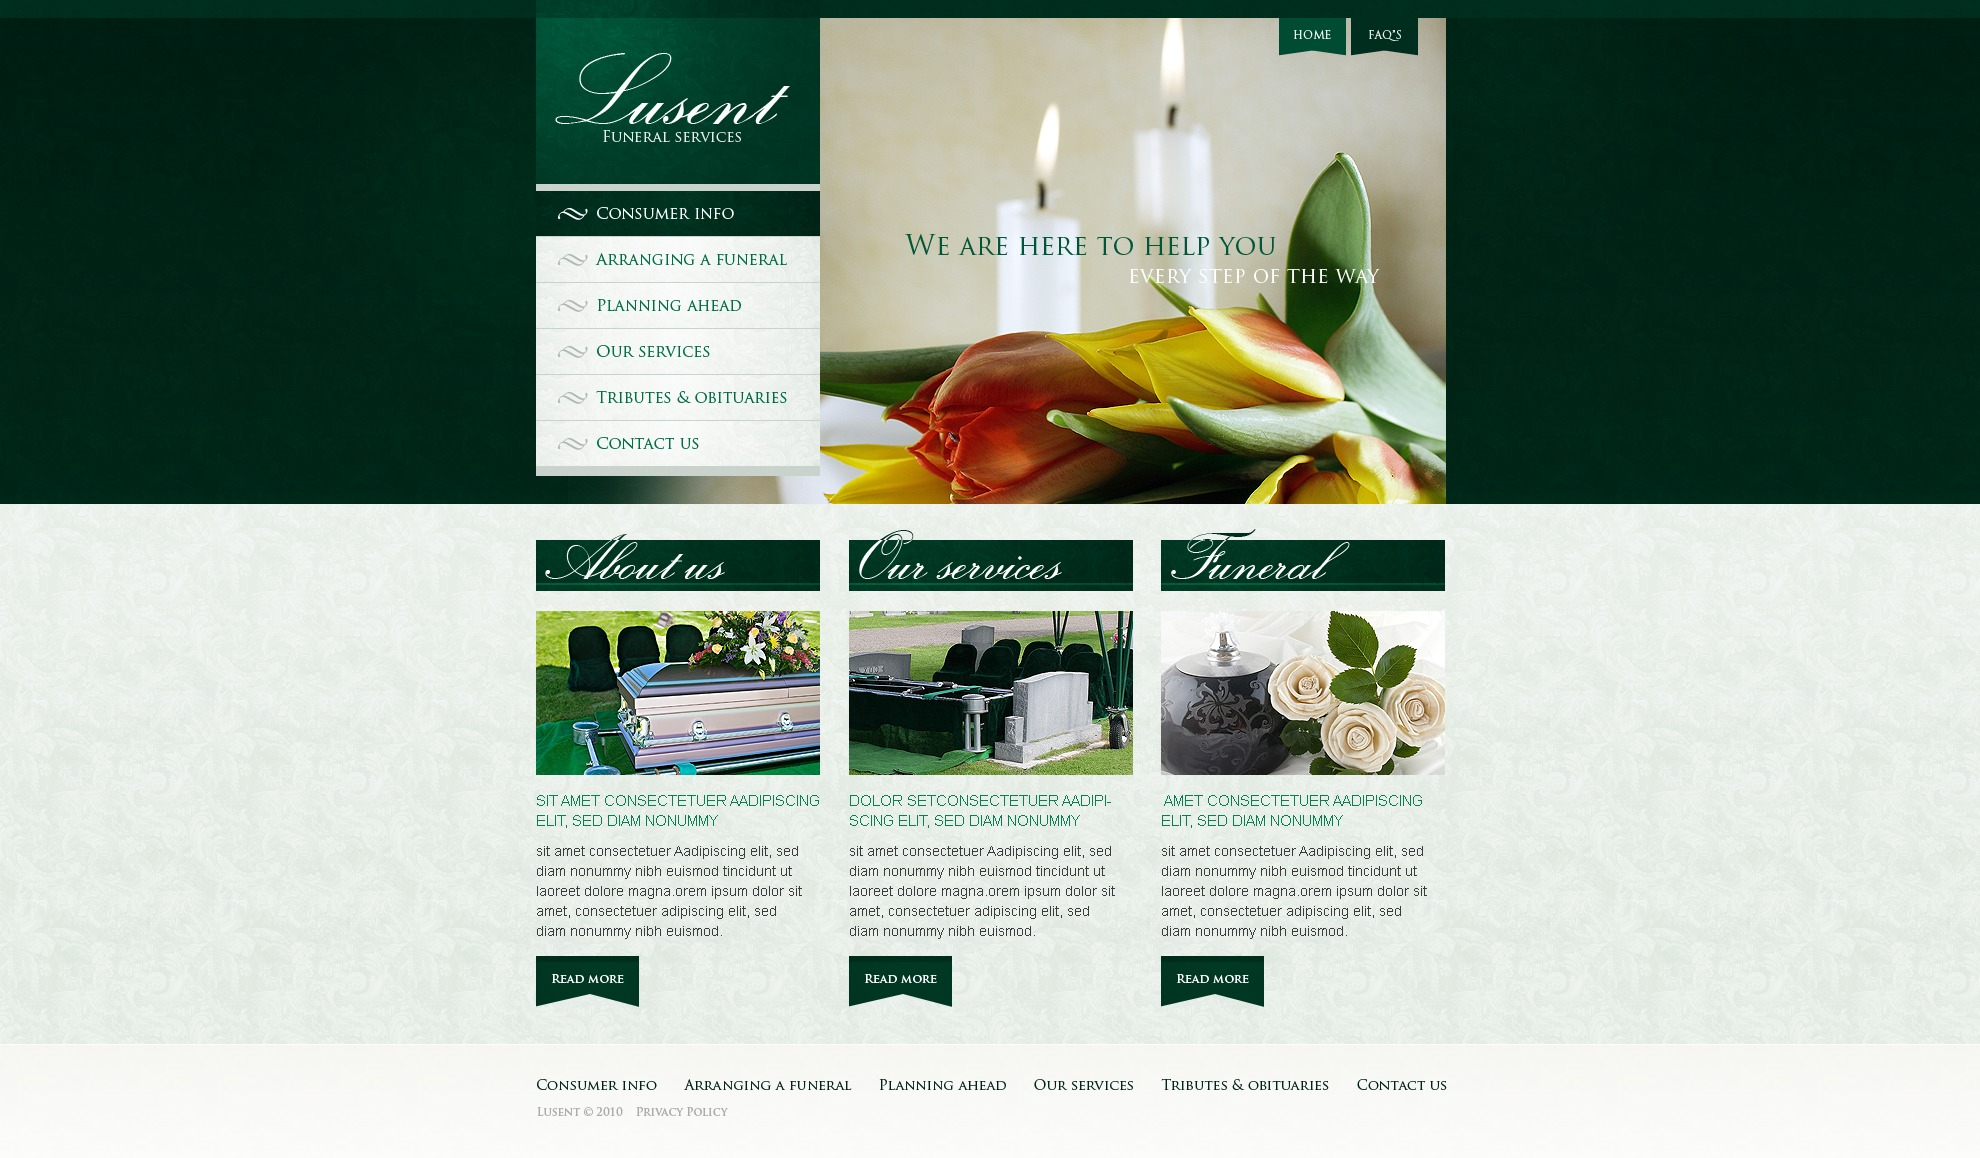 The Lucent Funeral Company PSD Design 54149, one of the best PSD templates of its kind (society & culture, wide), also known as Lucent funeral company PSD template, services PSD template, casket PSD template, urn PSD template, special coffin PSD template, grave PSD template, metal PSD template, inner PSD template, boxes PSD template, burial PSD template, funeral PSD template, train PSD template, undertaker PSD template, office PSD template, knell PSD template, dead PSD template, march PSD template, memorial PSD template, tombstone PSD template, flowers PSD template, wreath PSD template, organization PSD template, decorations PSD template, crosses PSD template, obituary PSD template, notice PSD template, equipment and related with Lucent funeral company, services, casket, urn, special coffin, grave, metal, inner, boxes, burial, funeral, train, undertaker, office, knell, dead, march, memorial, tombstone, flowers, wreath, organization, decorations, crosses, obituary, notice, equipment, etc.